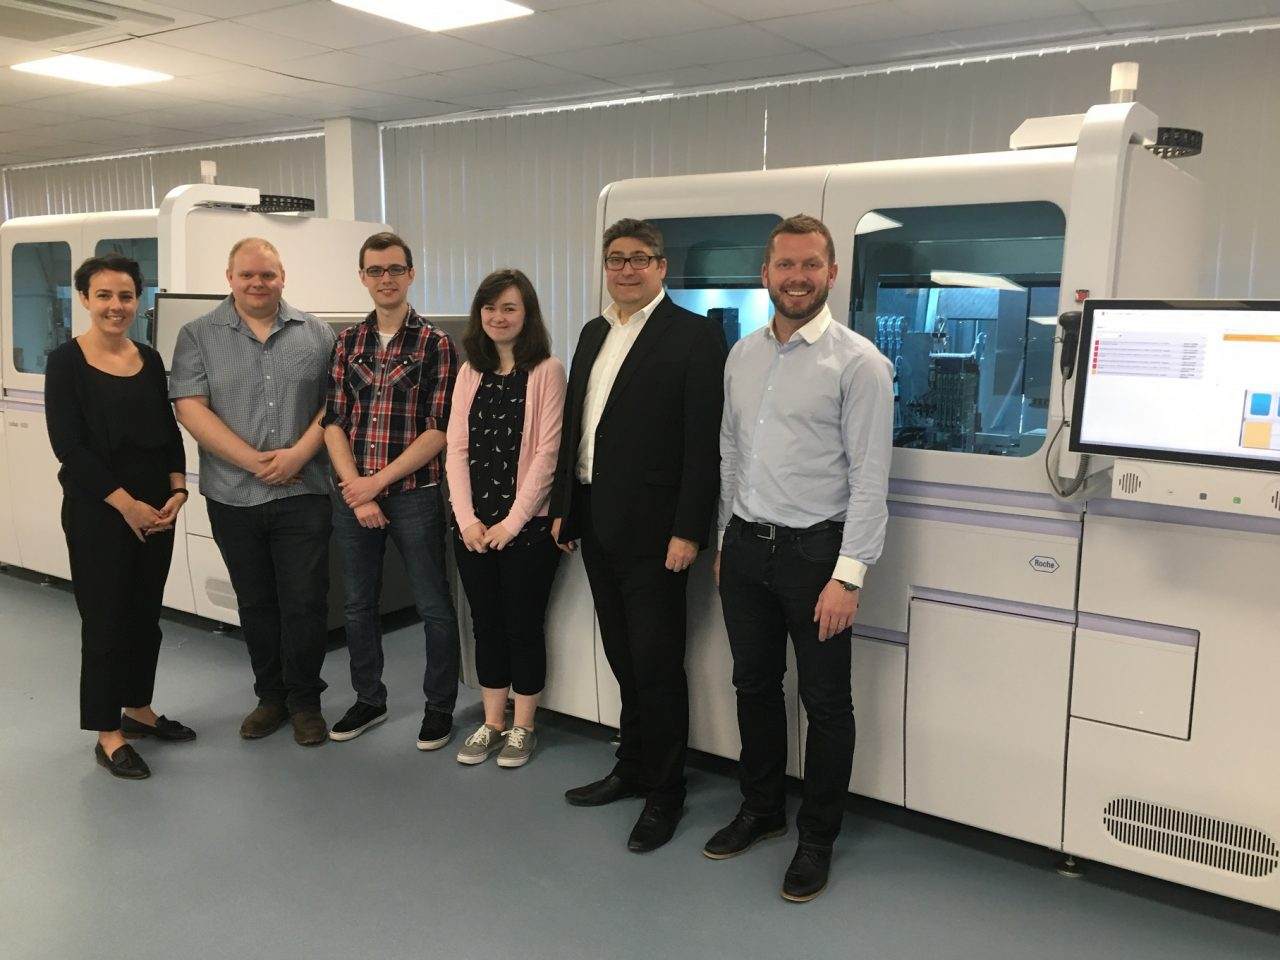 (left to right): Chloe Williams of equipment supplier Roche; Tim Alston, technical director at Preventx, Ryan Kinsella, lab director at Preventx; Natalie Loeber, lab manager at Preventx with Peter Whiteley of Knight Frank and Richard Burns of ARBA Group.